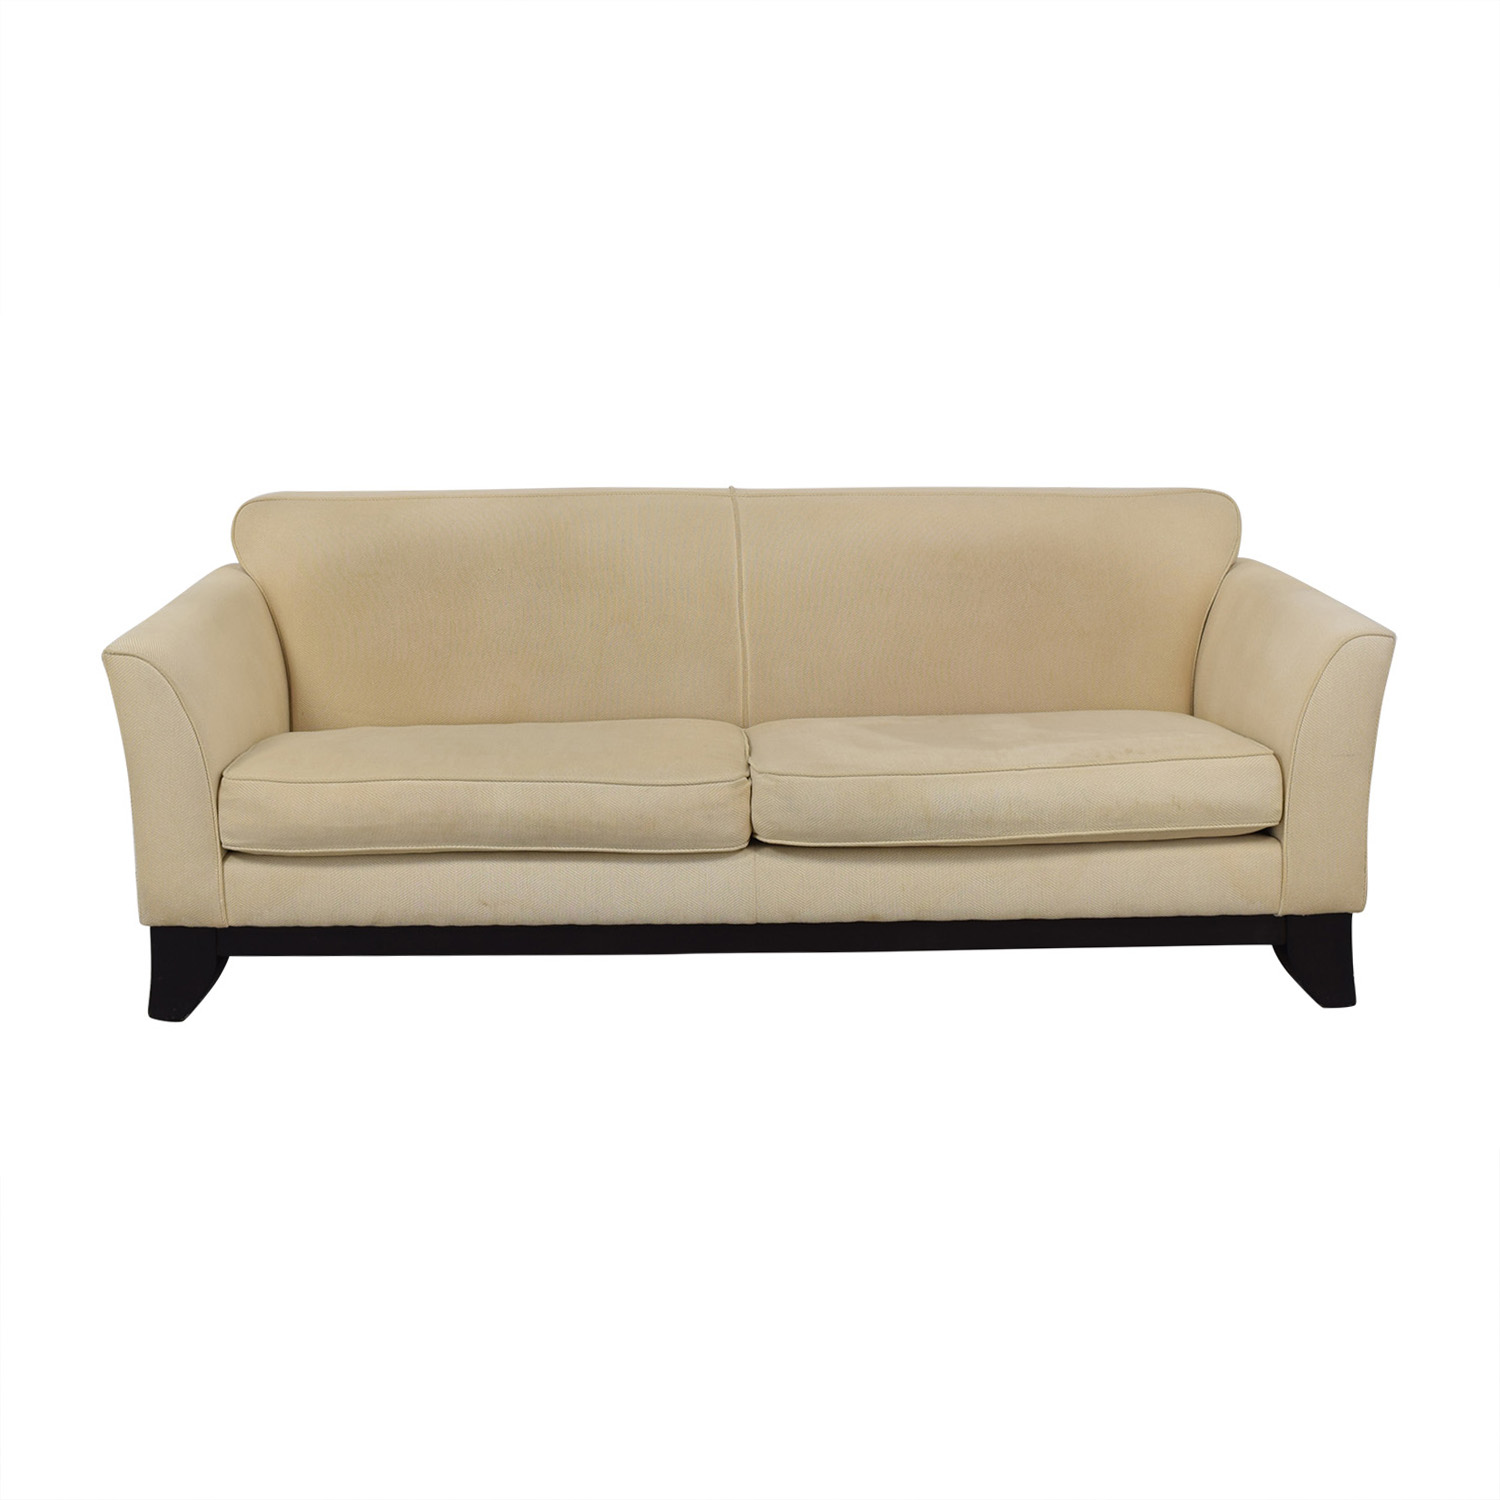 Pottery Barn Pottery Barn Greenwich Upholstered Sofa ma